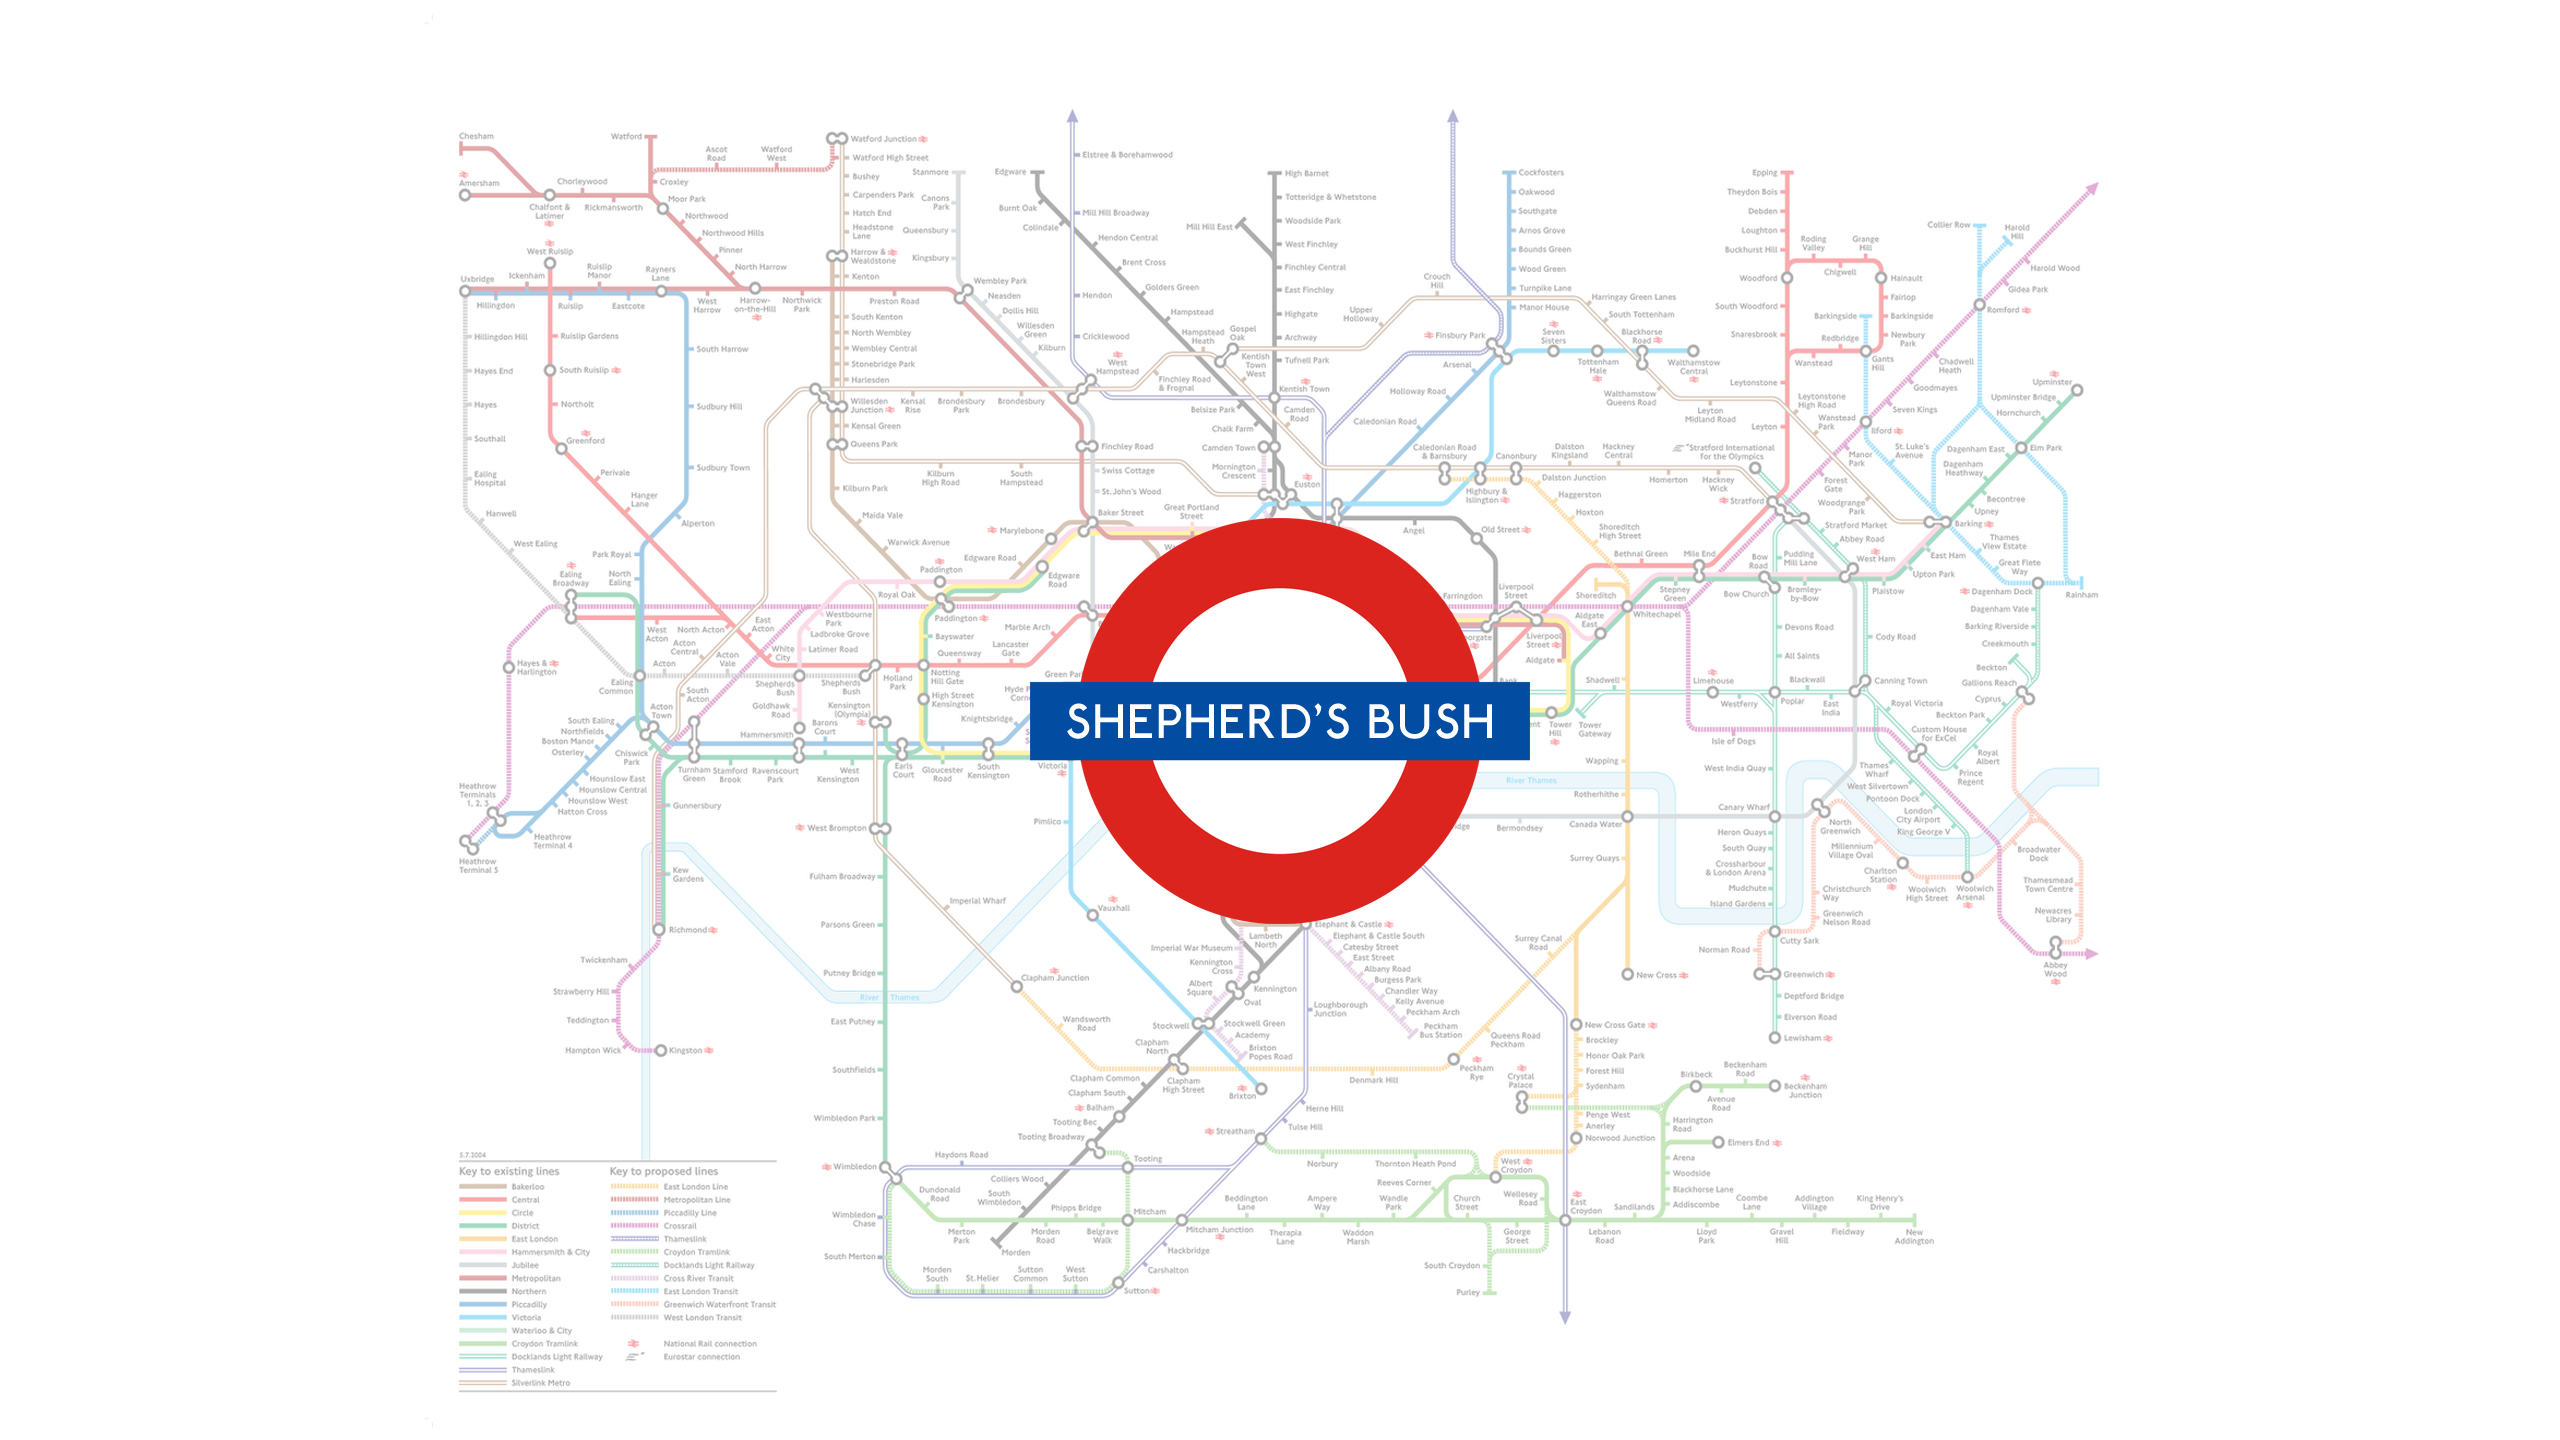 Shepherd's Bush (Map)